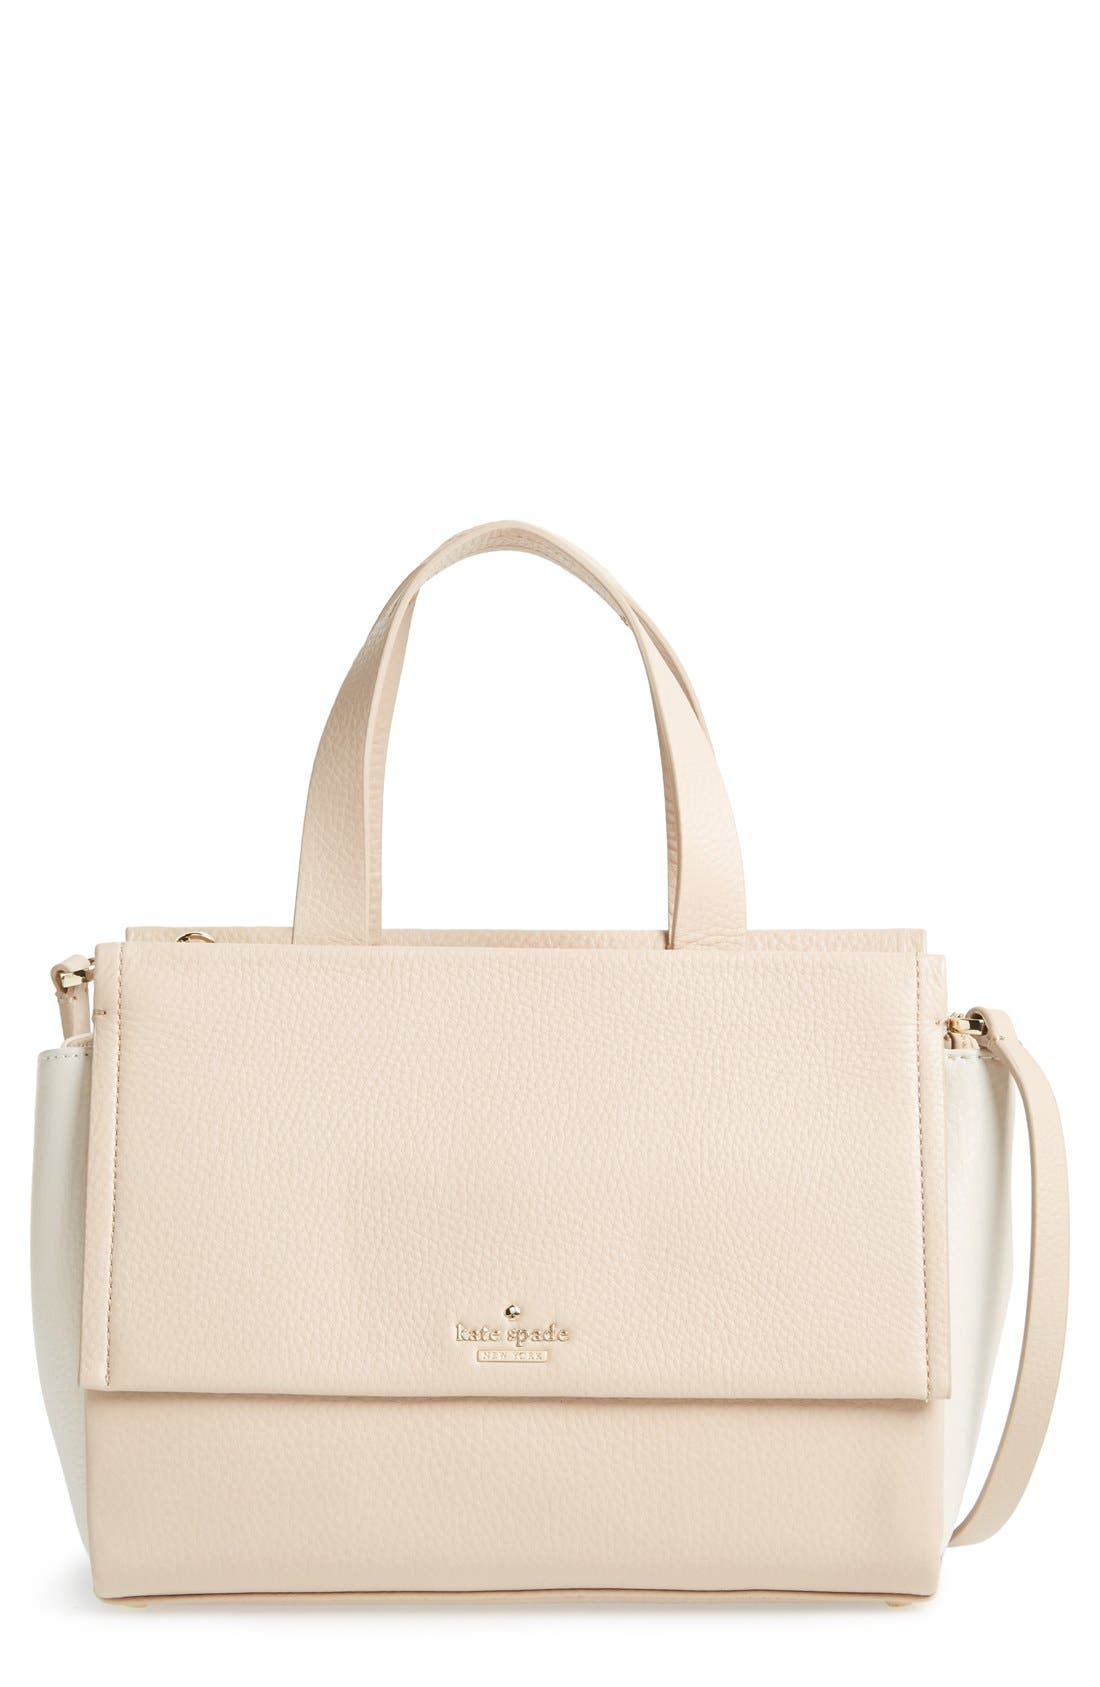 Main Image - kate spade new york 'bromley street - adela' pebbled leather satchel